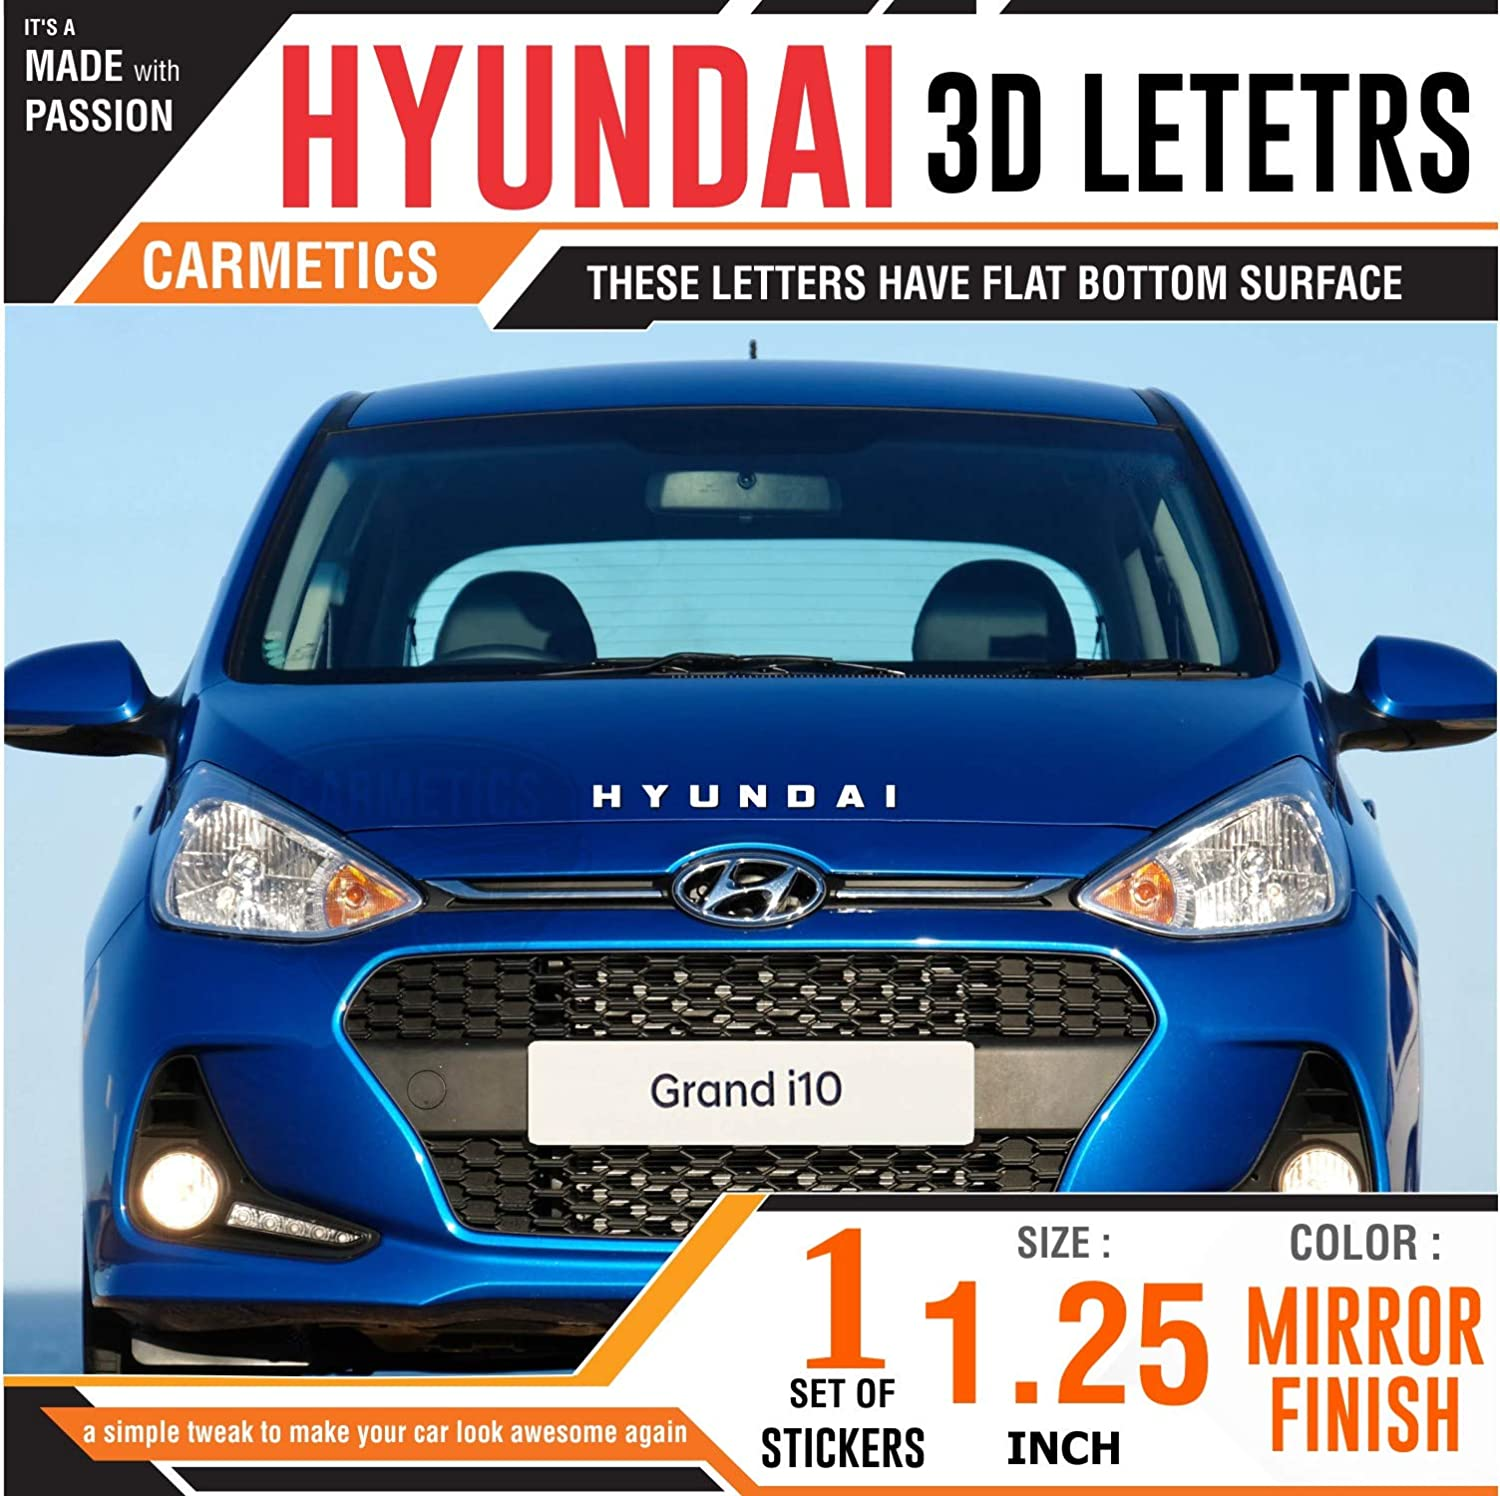 Carmetics hyundai 3d letters stickers logo emblem bonnet stickers accessories with free chrome petrol diesel stickers for hyundai grand i10 mirror finish